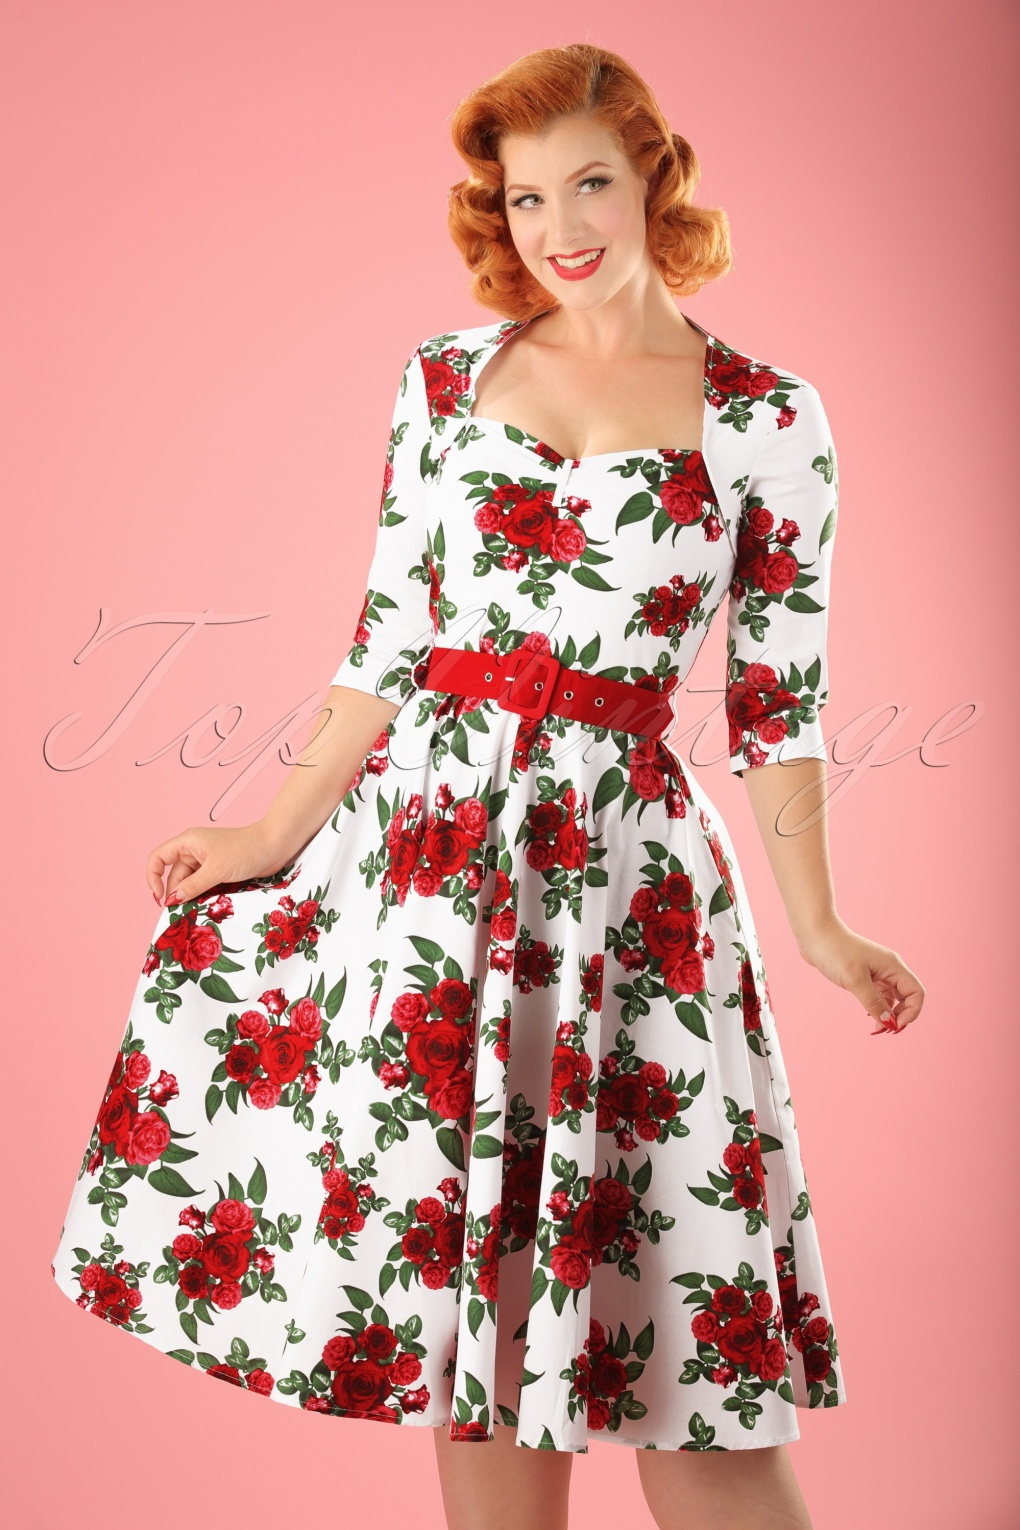 1940s Pinup Dresses for Sale 50s Eternity Roses Swing Dress in White and Red £62.68 AT vintagedancer.com